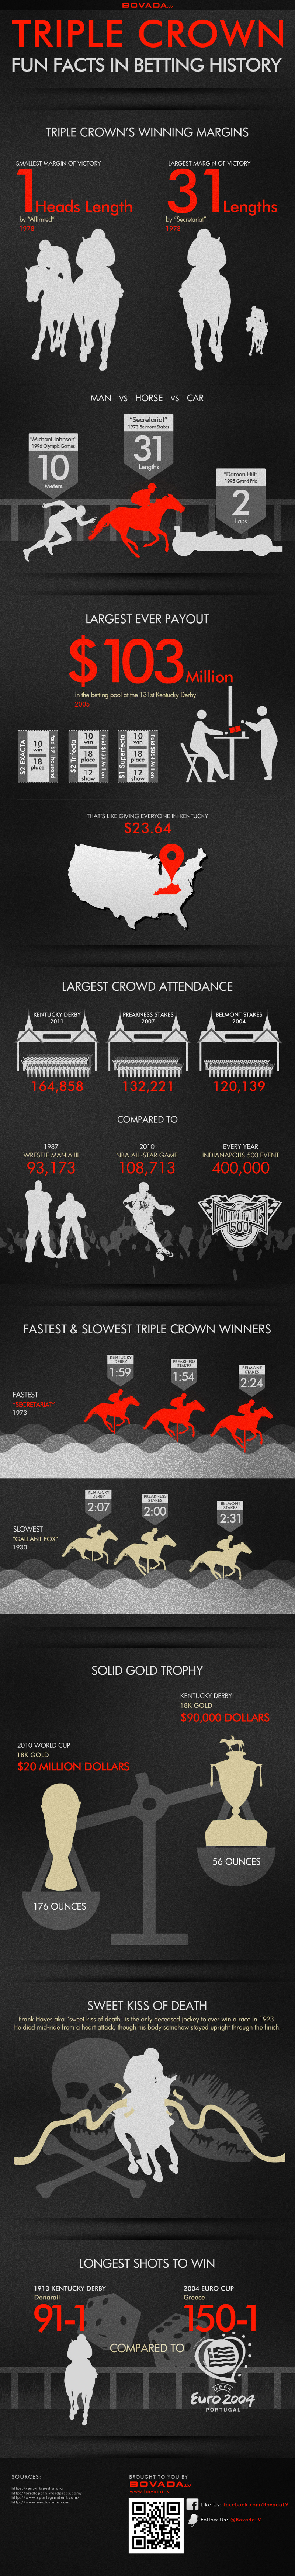 Facts in Horse Racing Gambling